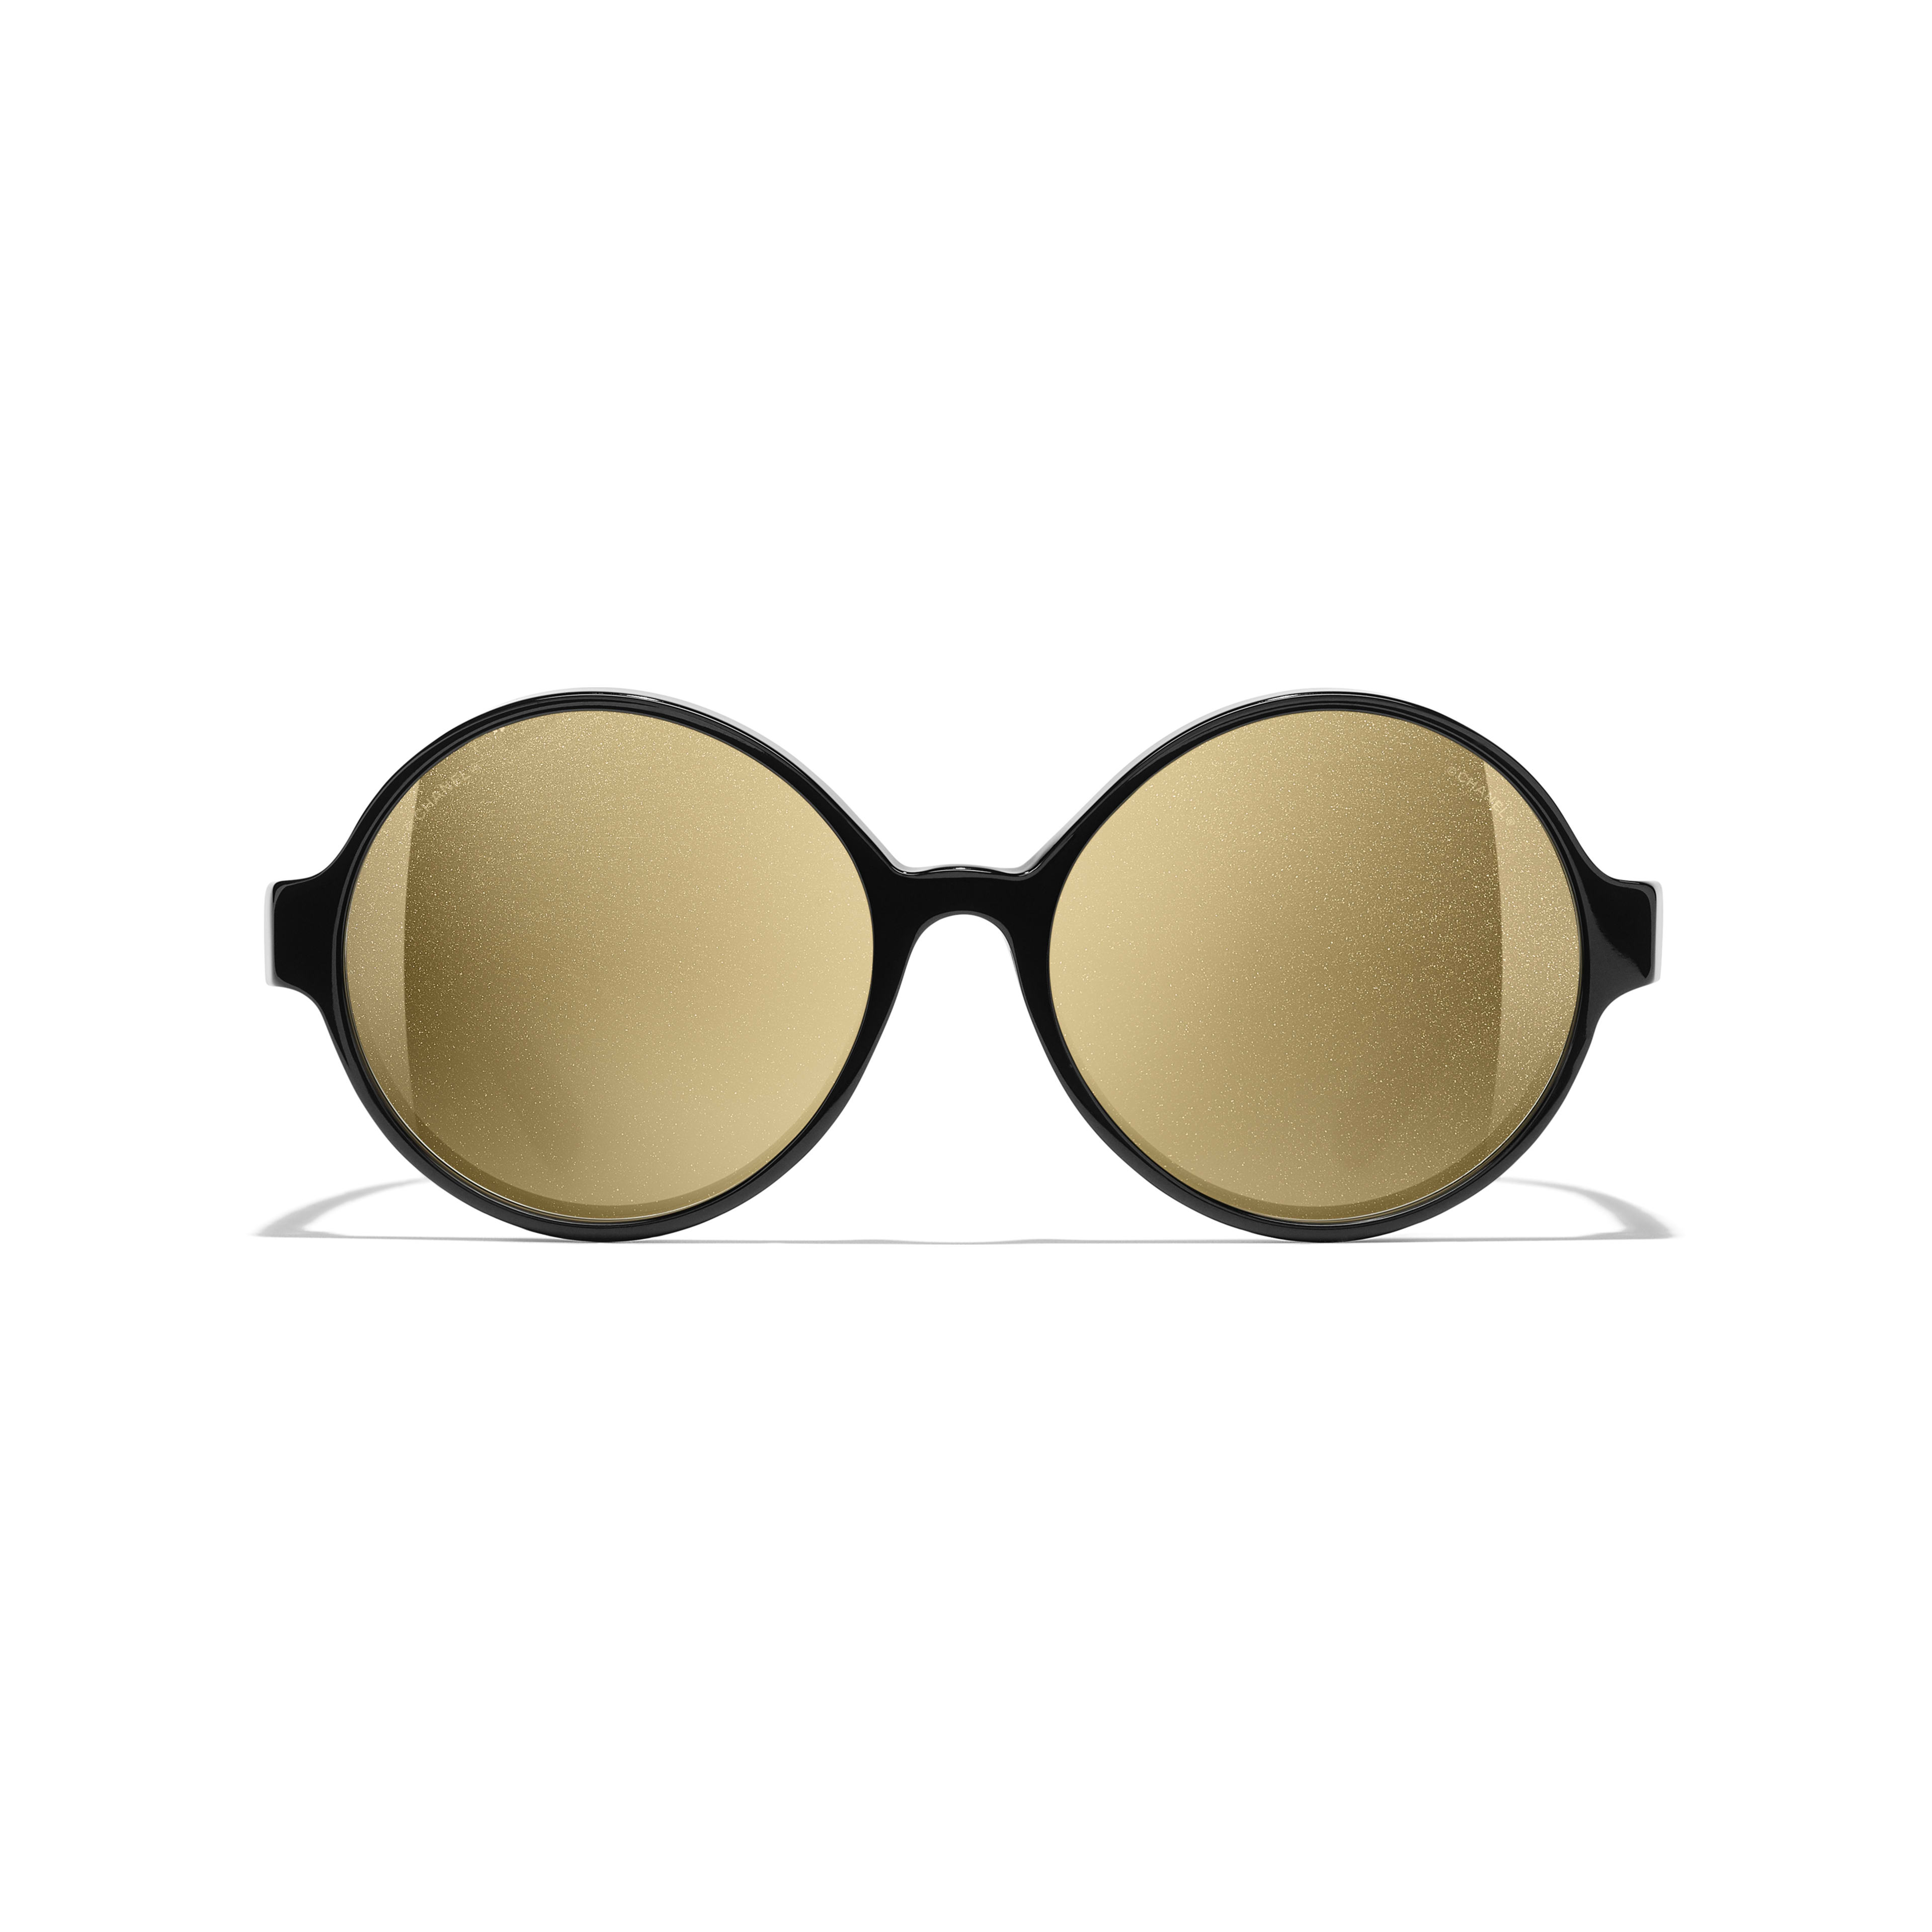 Round Sunglasses - Black - Acetate - Alternative view - see standard sized version